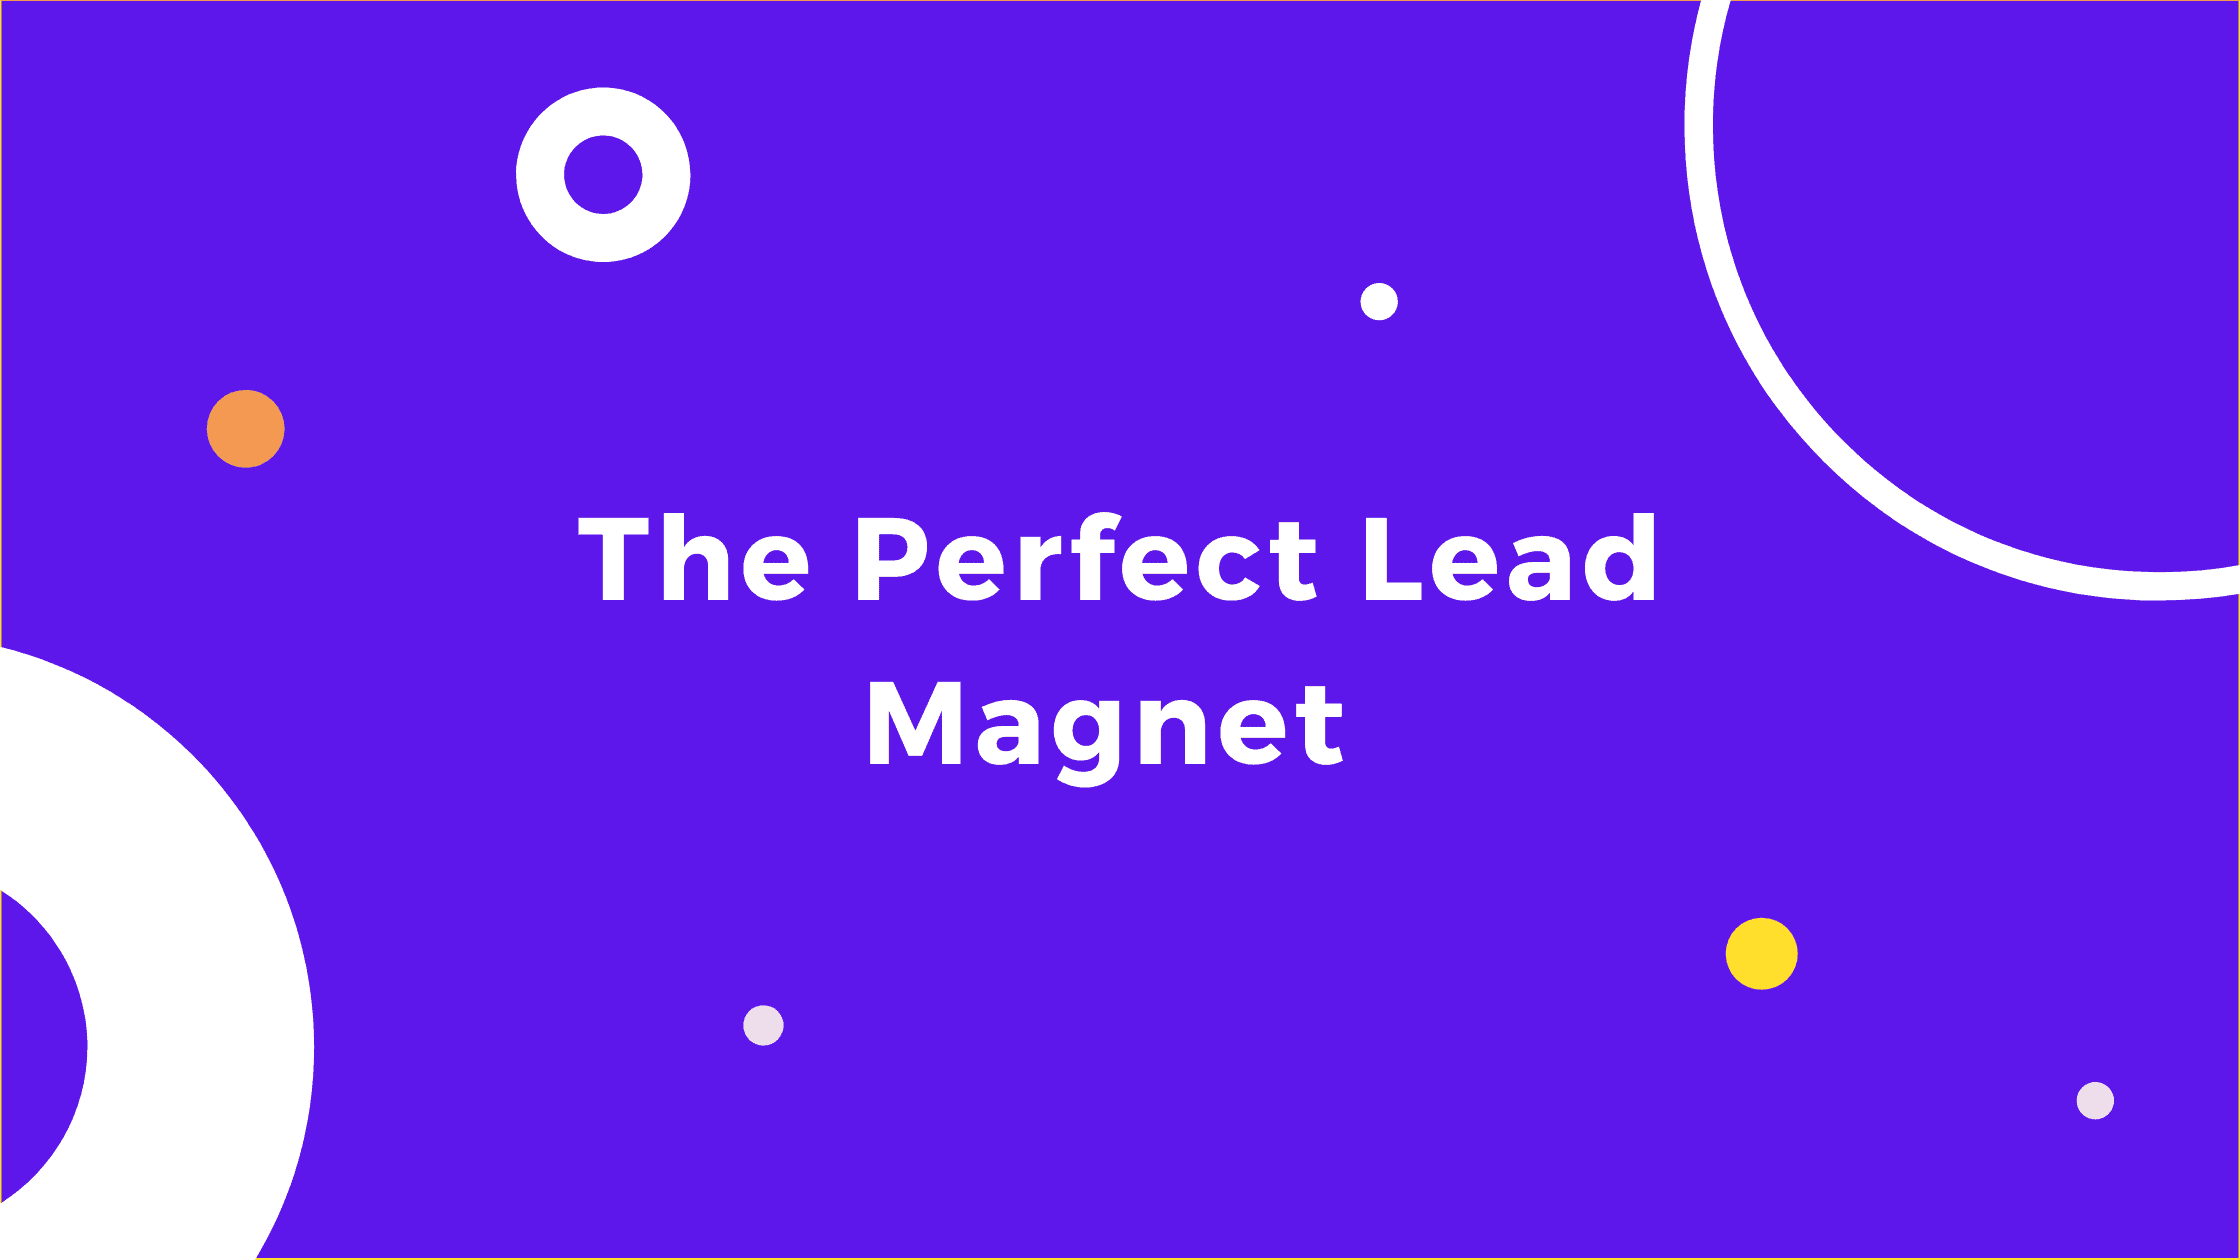 The Perfect Lead Magnet